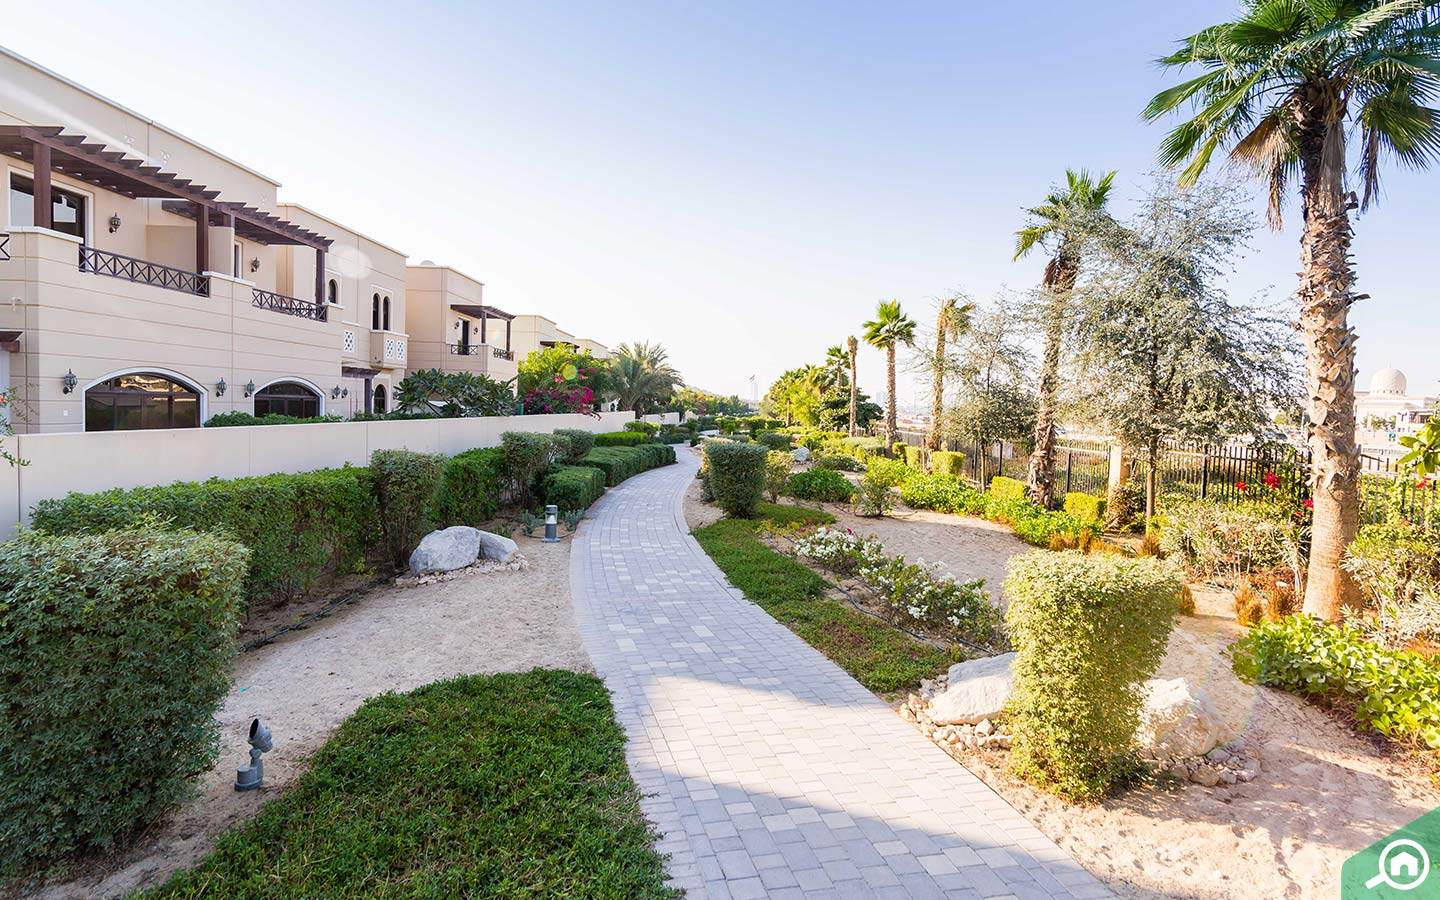 Walkways and Jogging tracks are plenty in Mudon - rent trends in modun